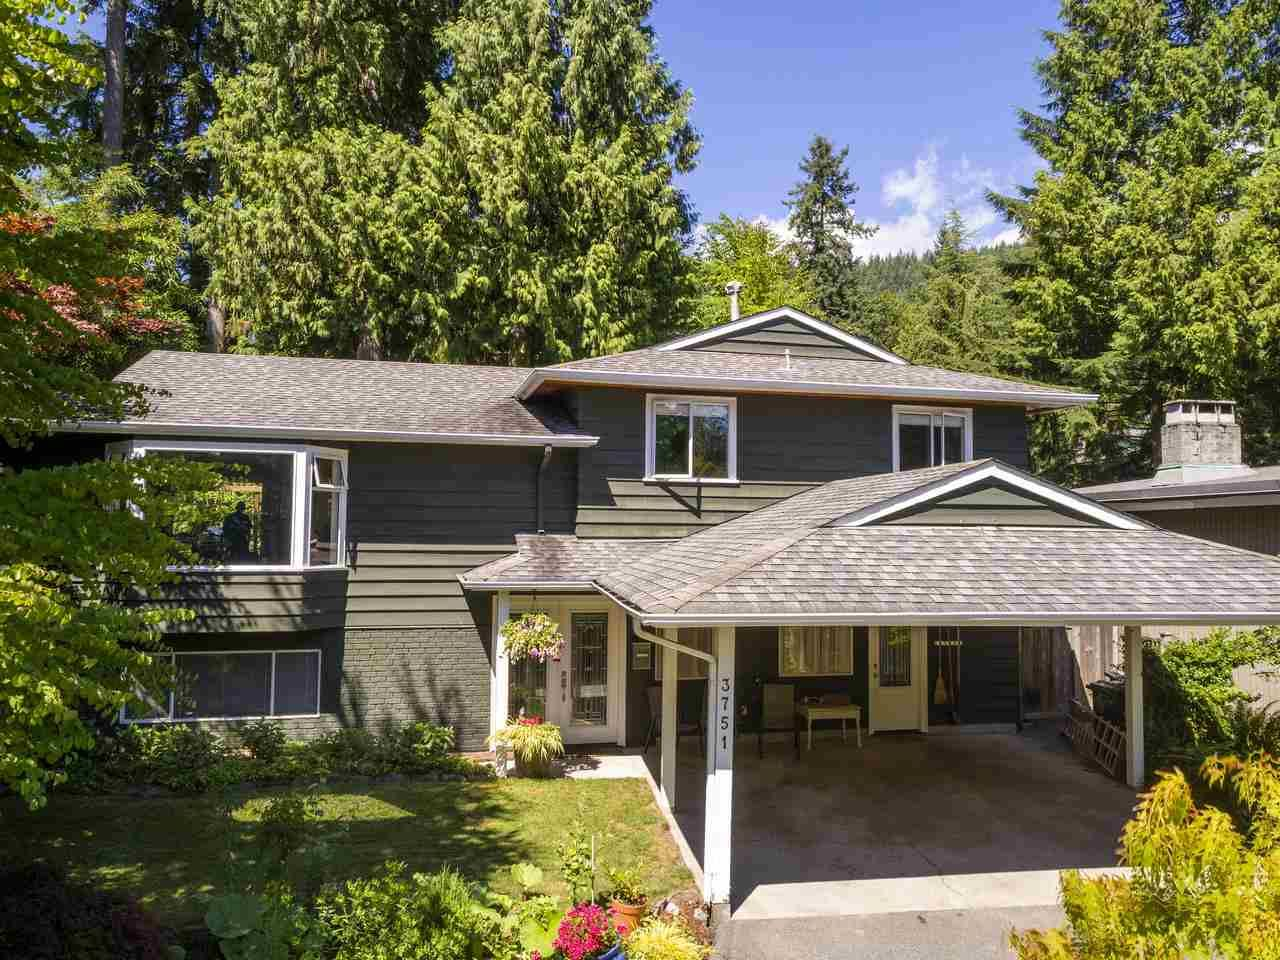 Main Photo: 3751 ROBLIN Place in North Vancouver: Princess Park House for sale : MLS®# R2485057